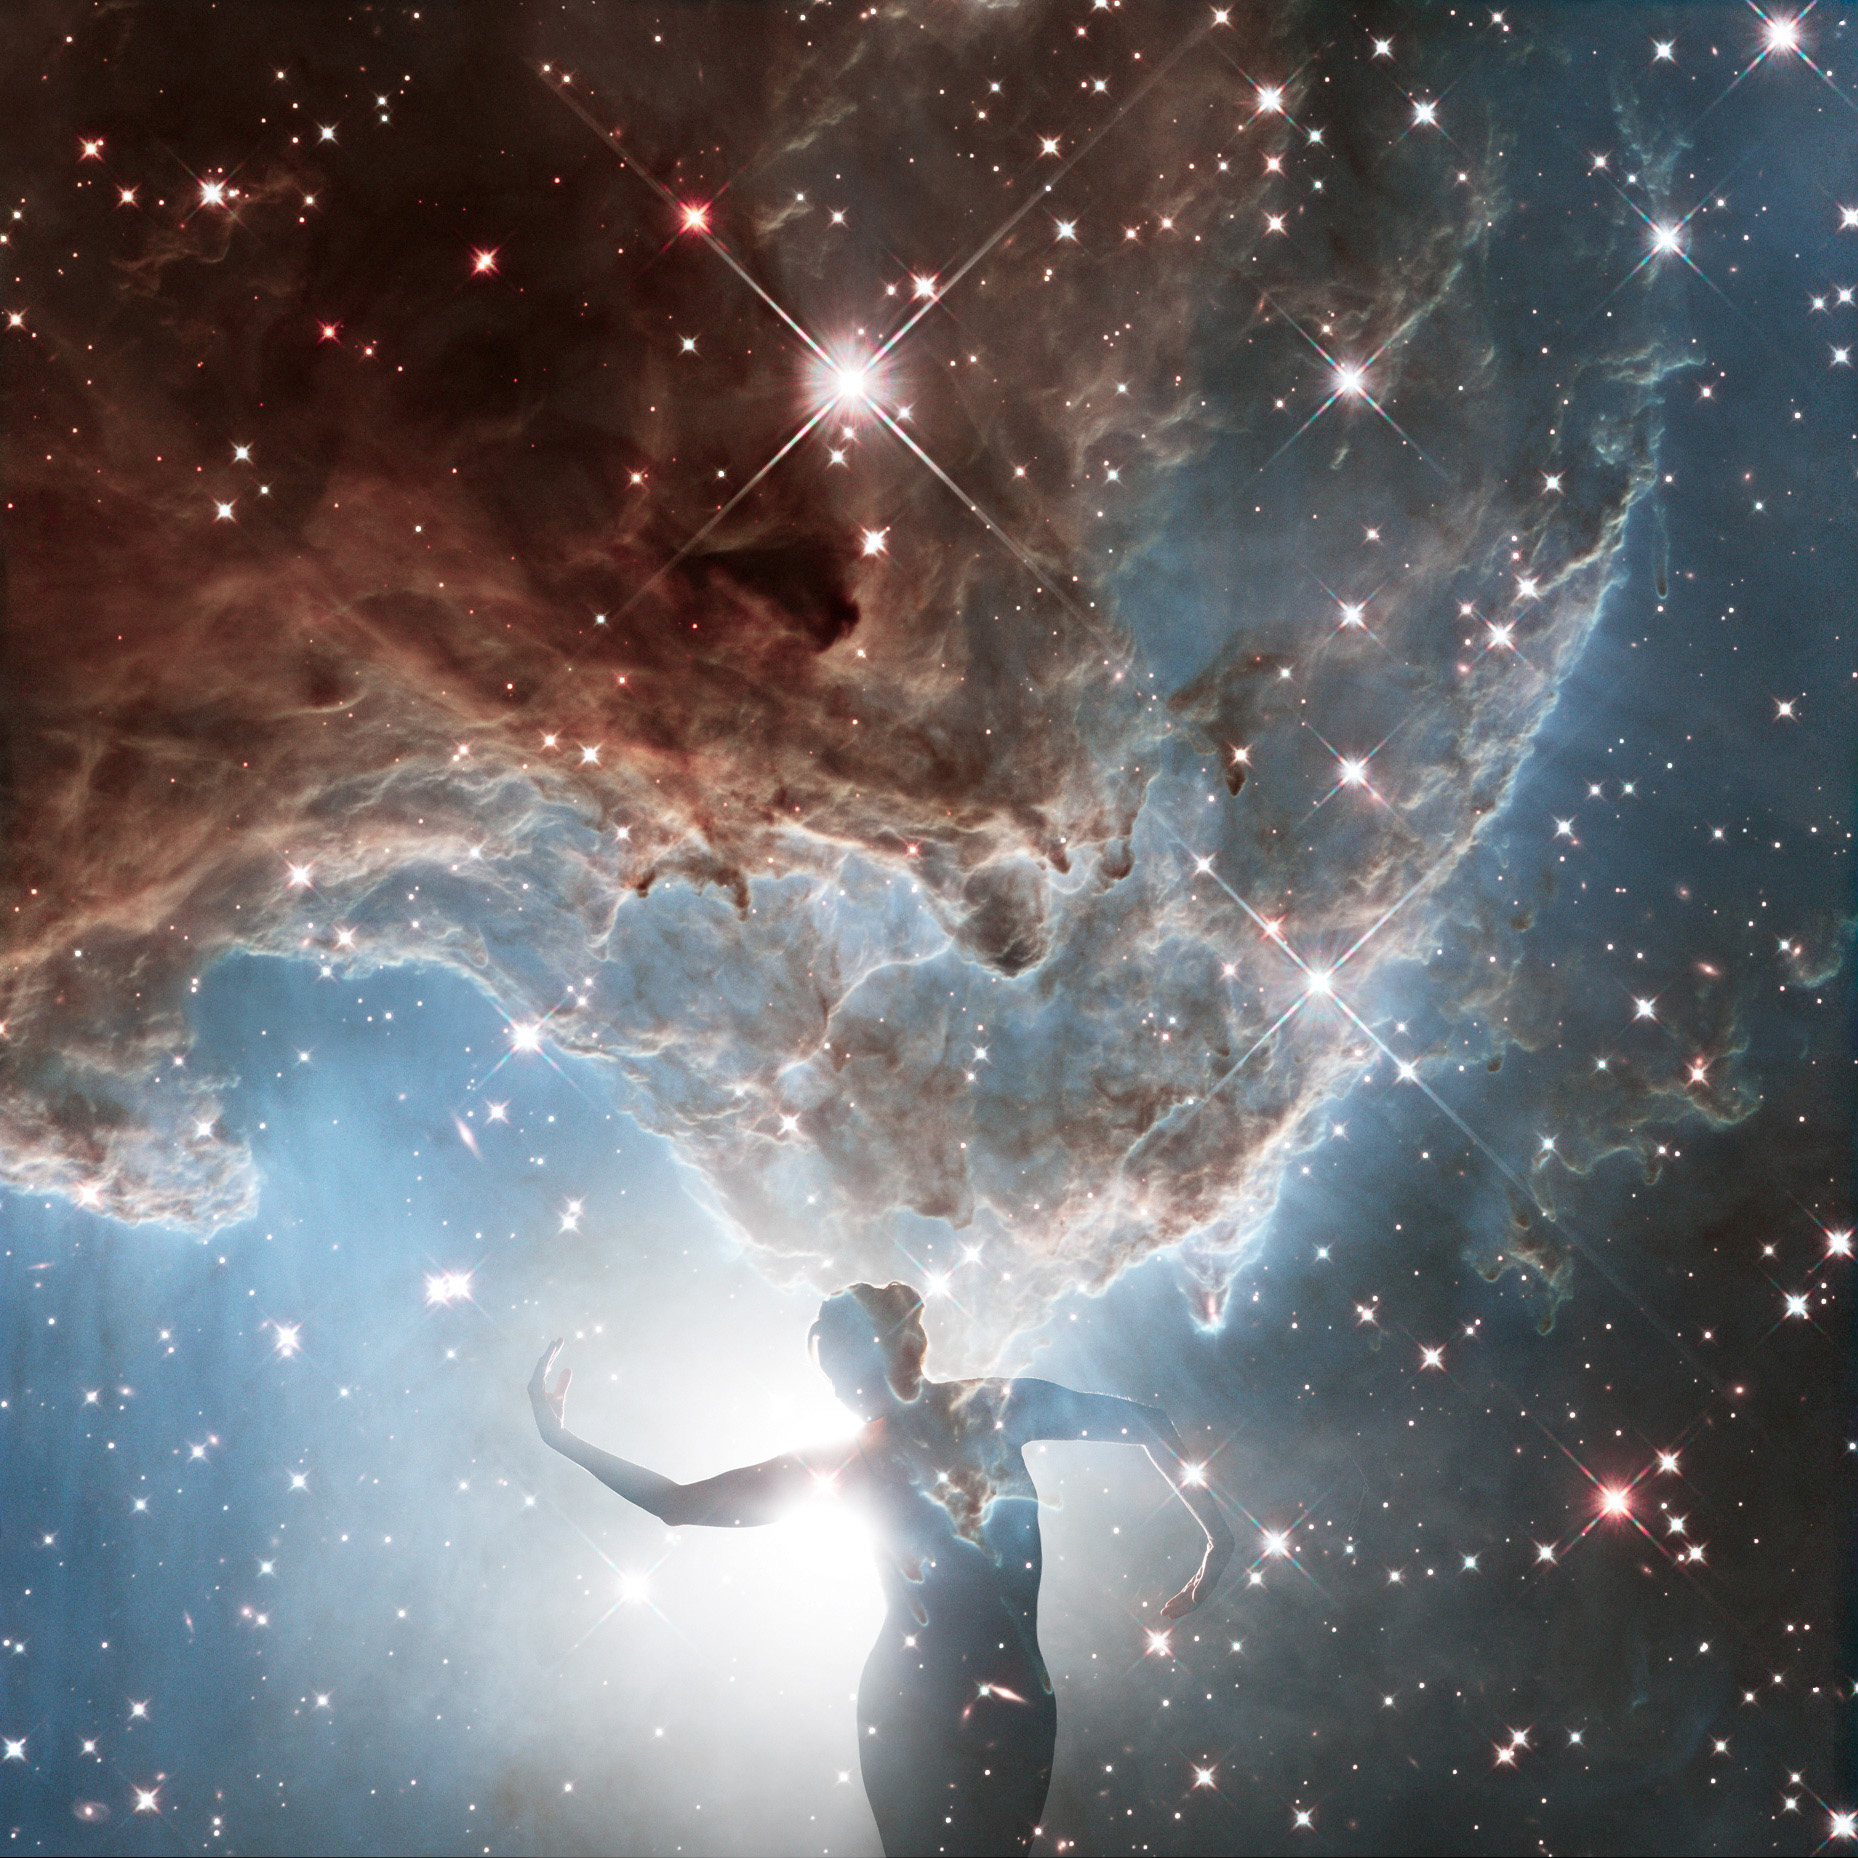 New Hubble image of NGC 2174